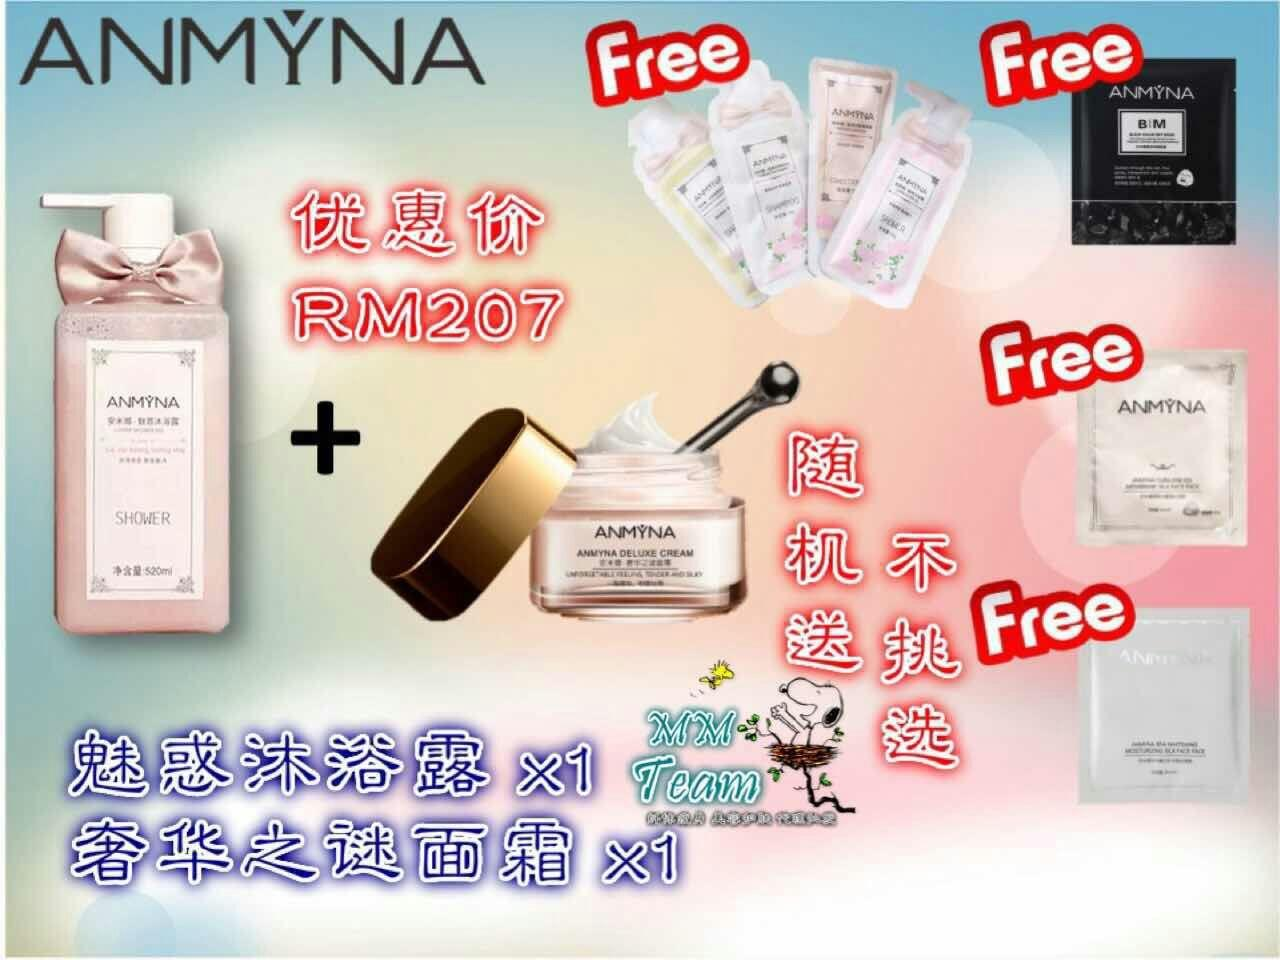 ANMYNA Charm Shower Gel + Deluxe Cream Package